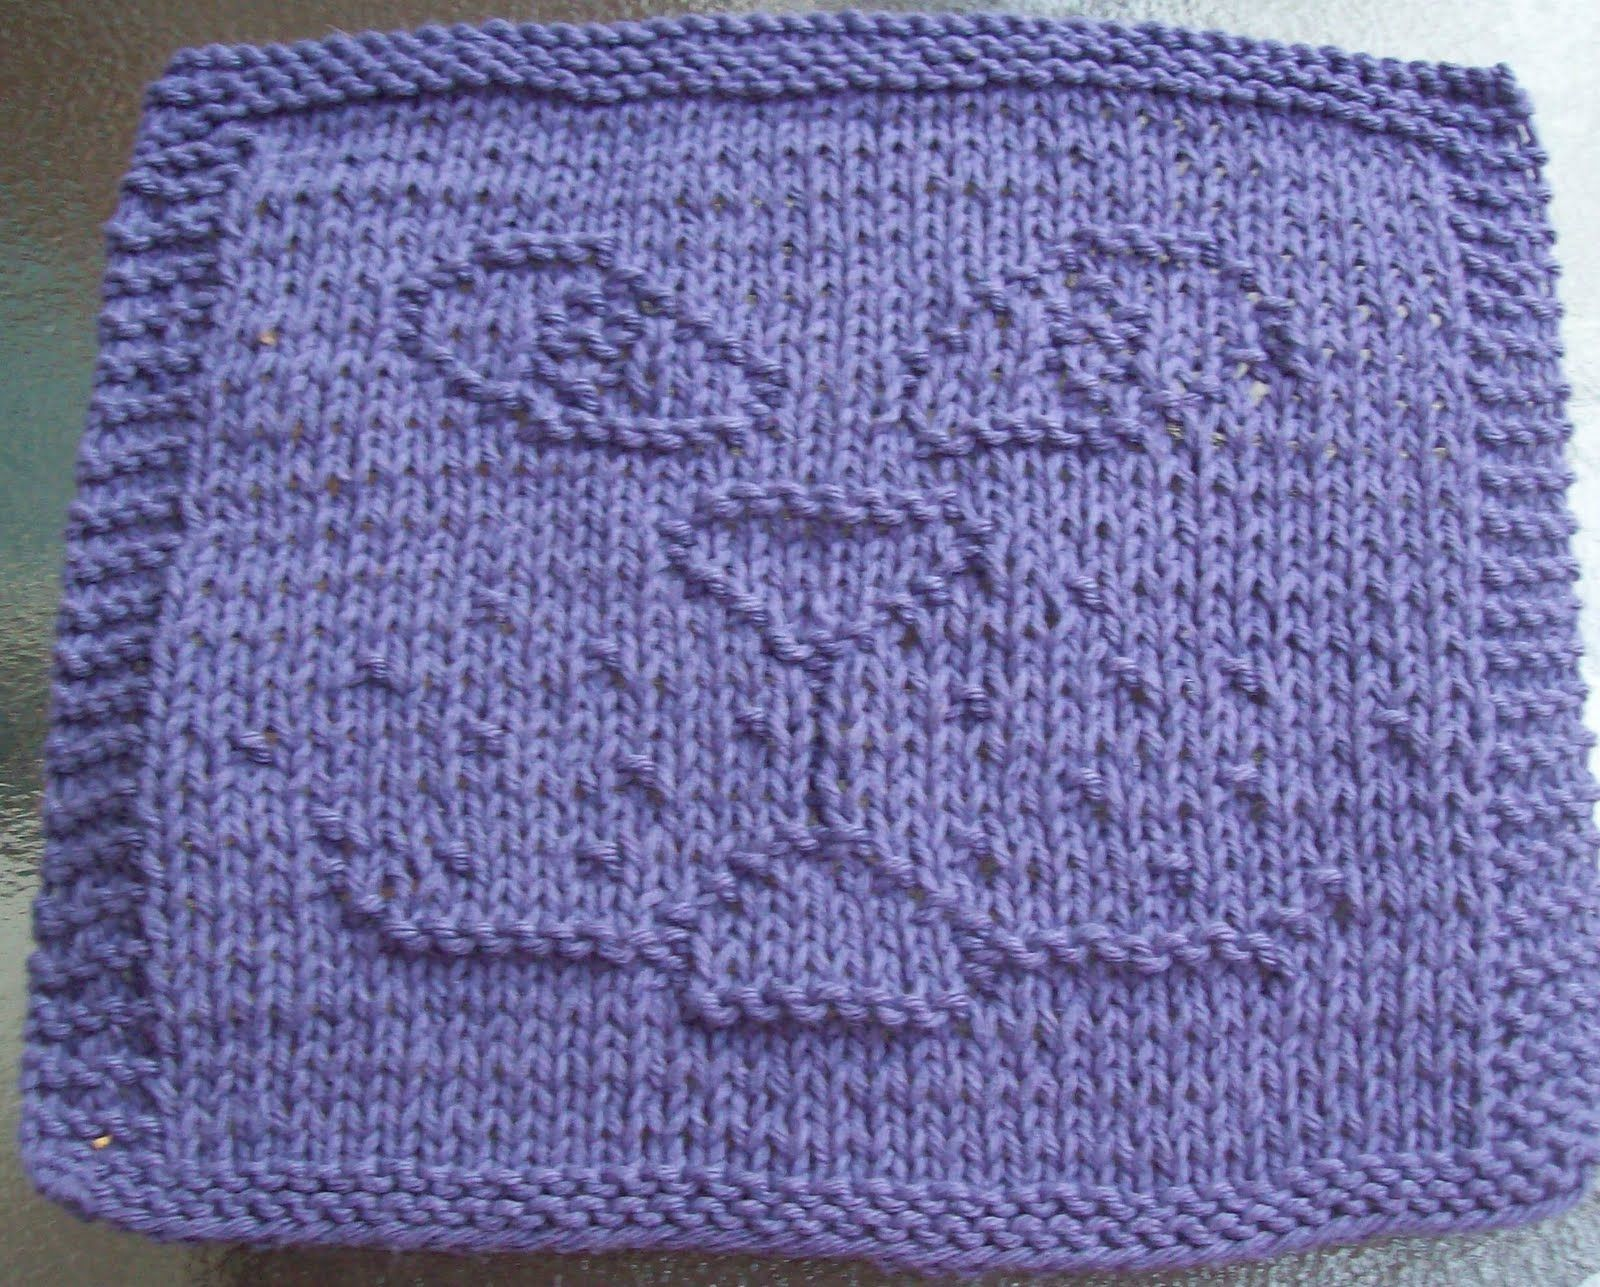 knitted dishcloth patterns | Cat Face Knit Dishcloth Pattern | knit ...